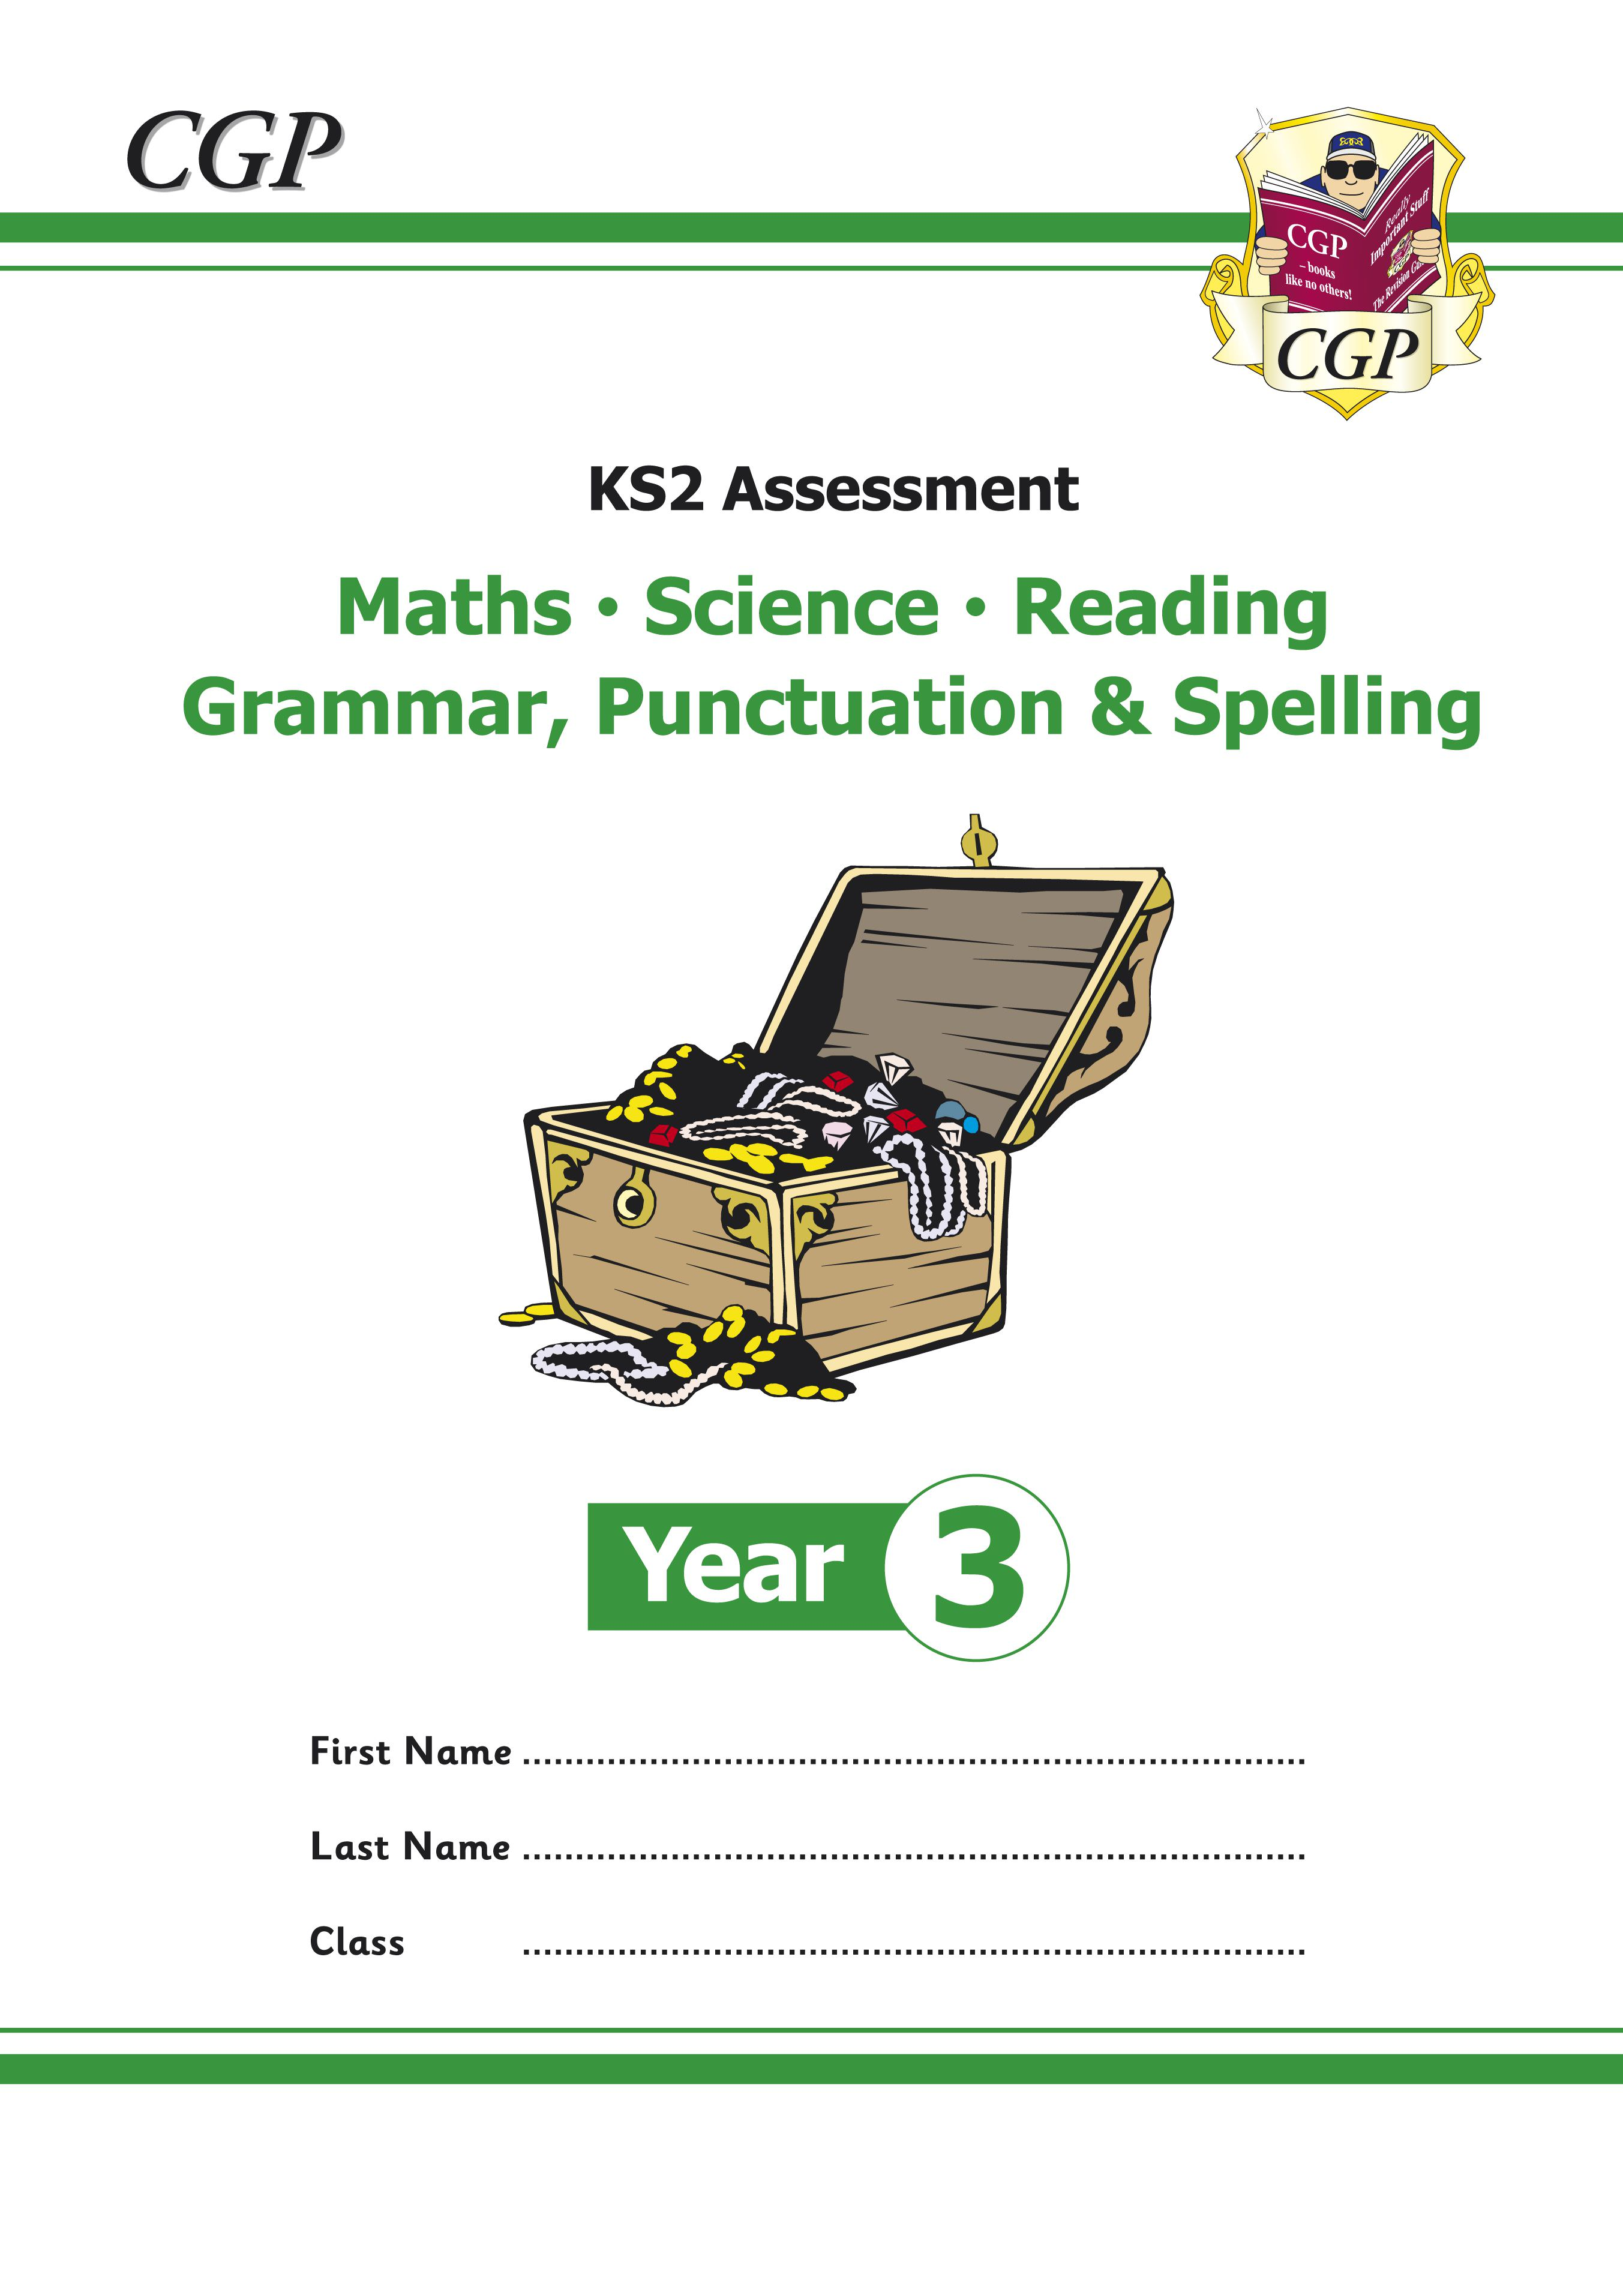 EMS3P21 - KS2 Assessment: Reading, SPaG, Maths and Science - Year 3 Tests